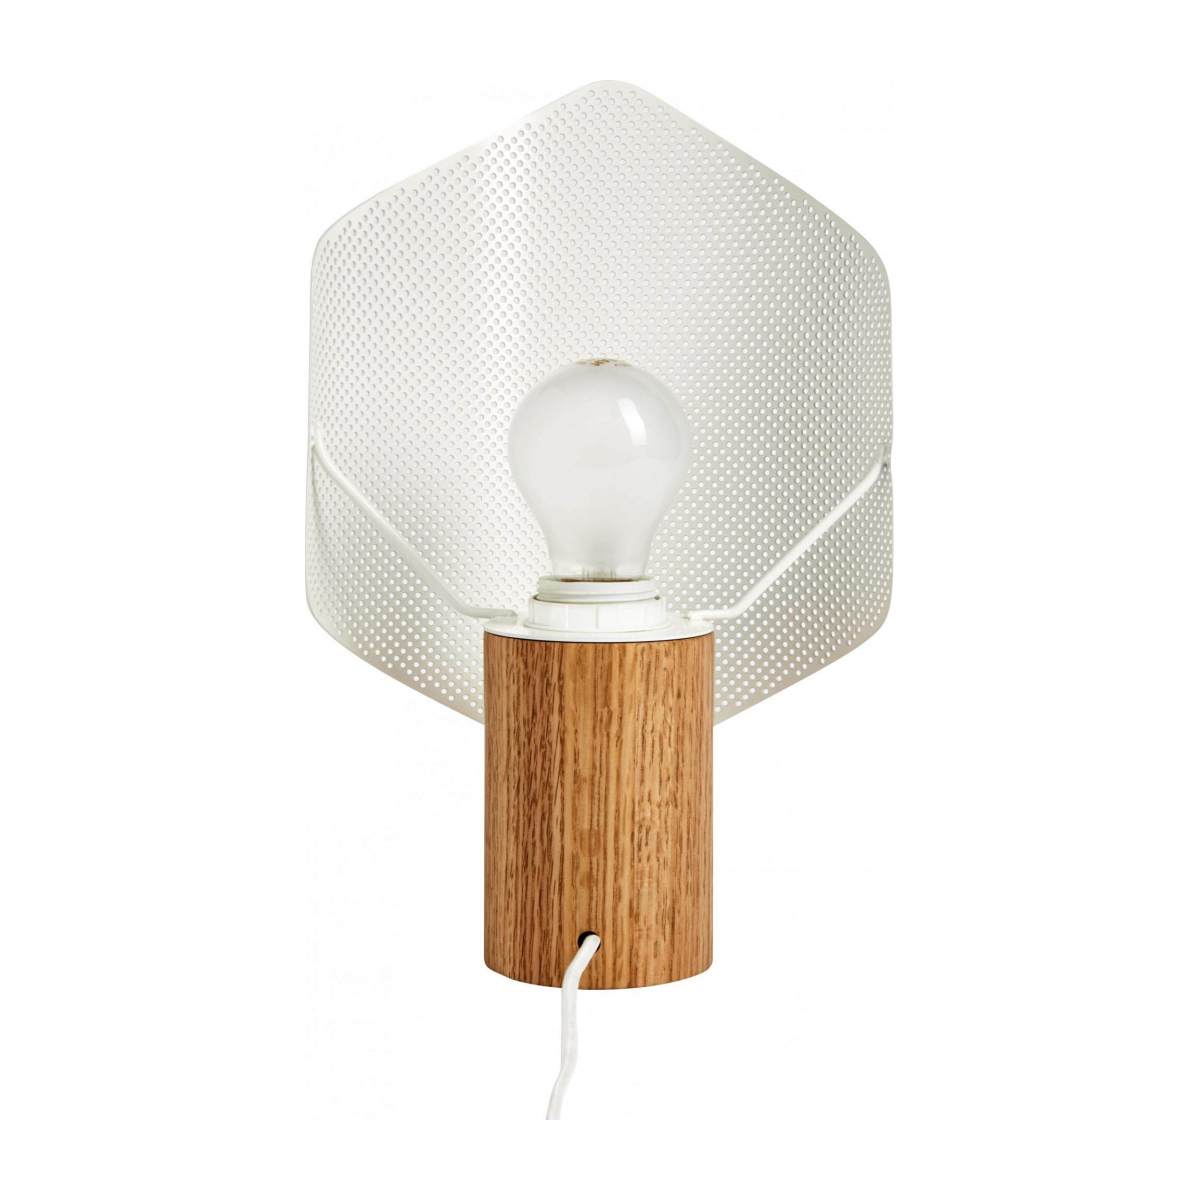 Lampe de table blanche n°5